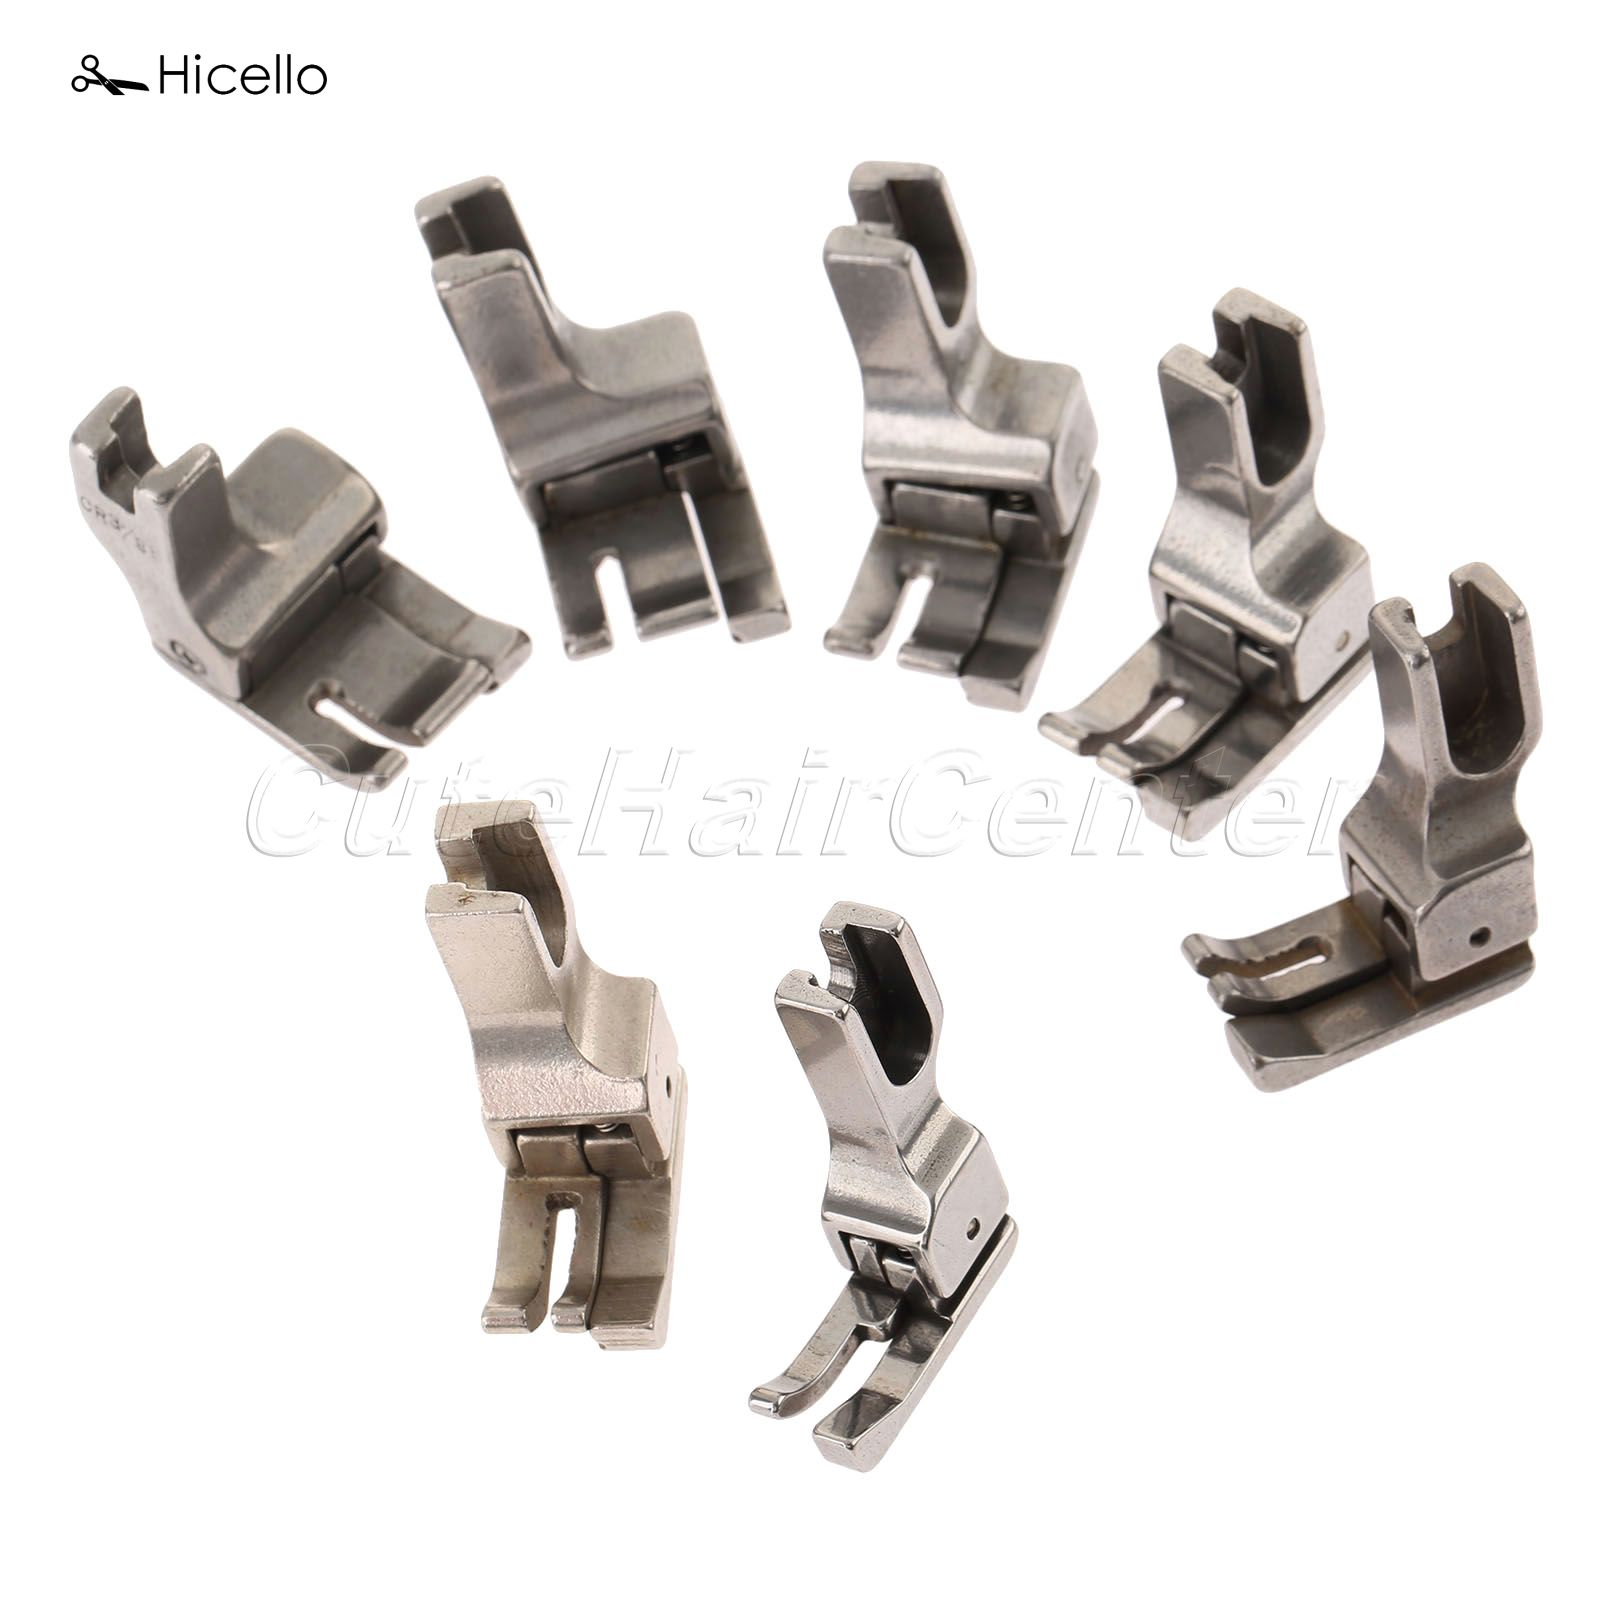 1PC Industrial Presser Foot Symaskin Full Steel RIGHT & WIDE Trykkfot 1.6mm / 3.2mm / 4mm / 4.8mm.6.4mm / 8mm / 9.5mm costura